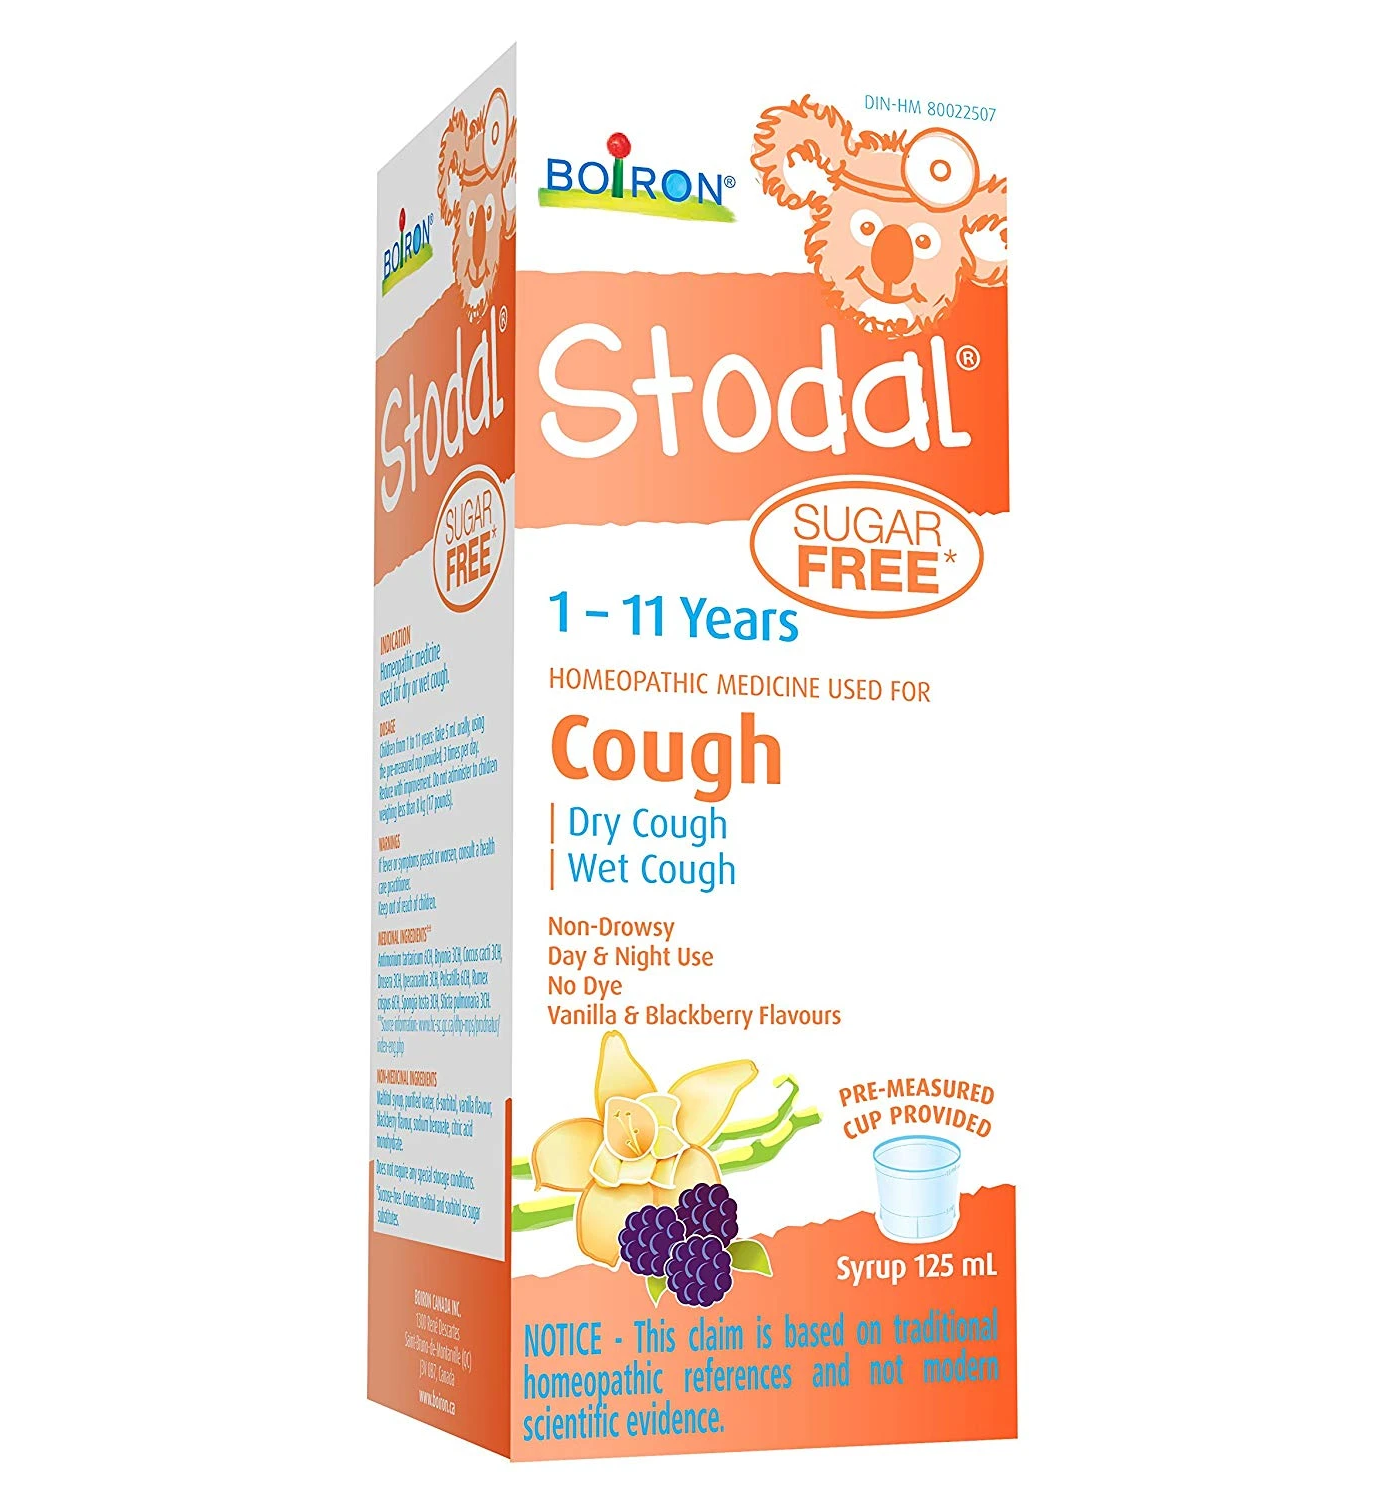 Boiron Stodal 1 - 11 Years Cough Syrup 125mL Sugar Free